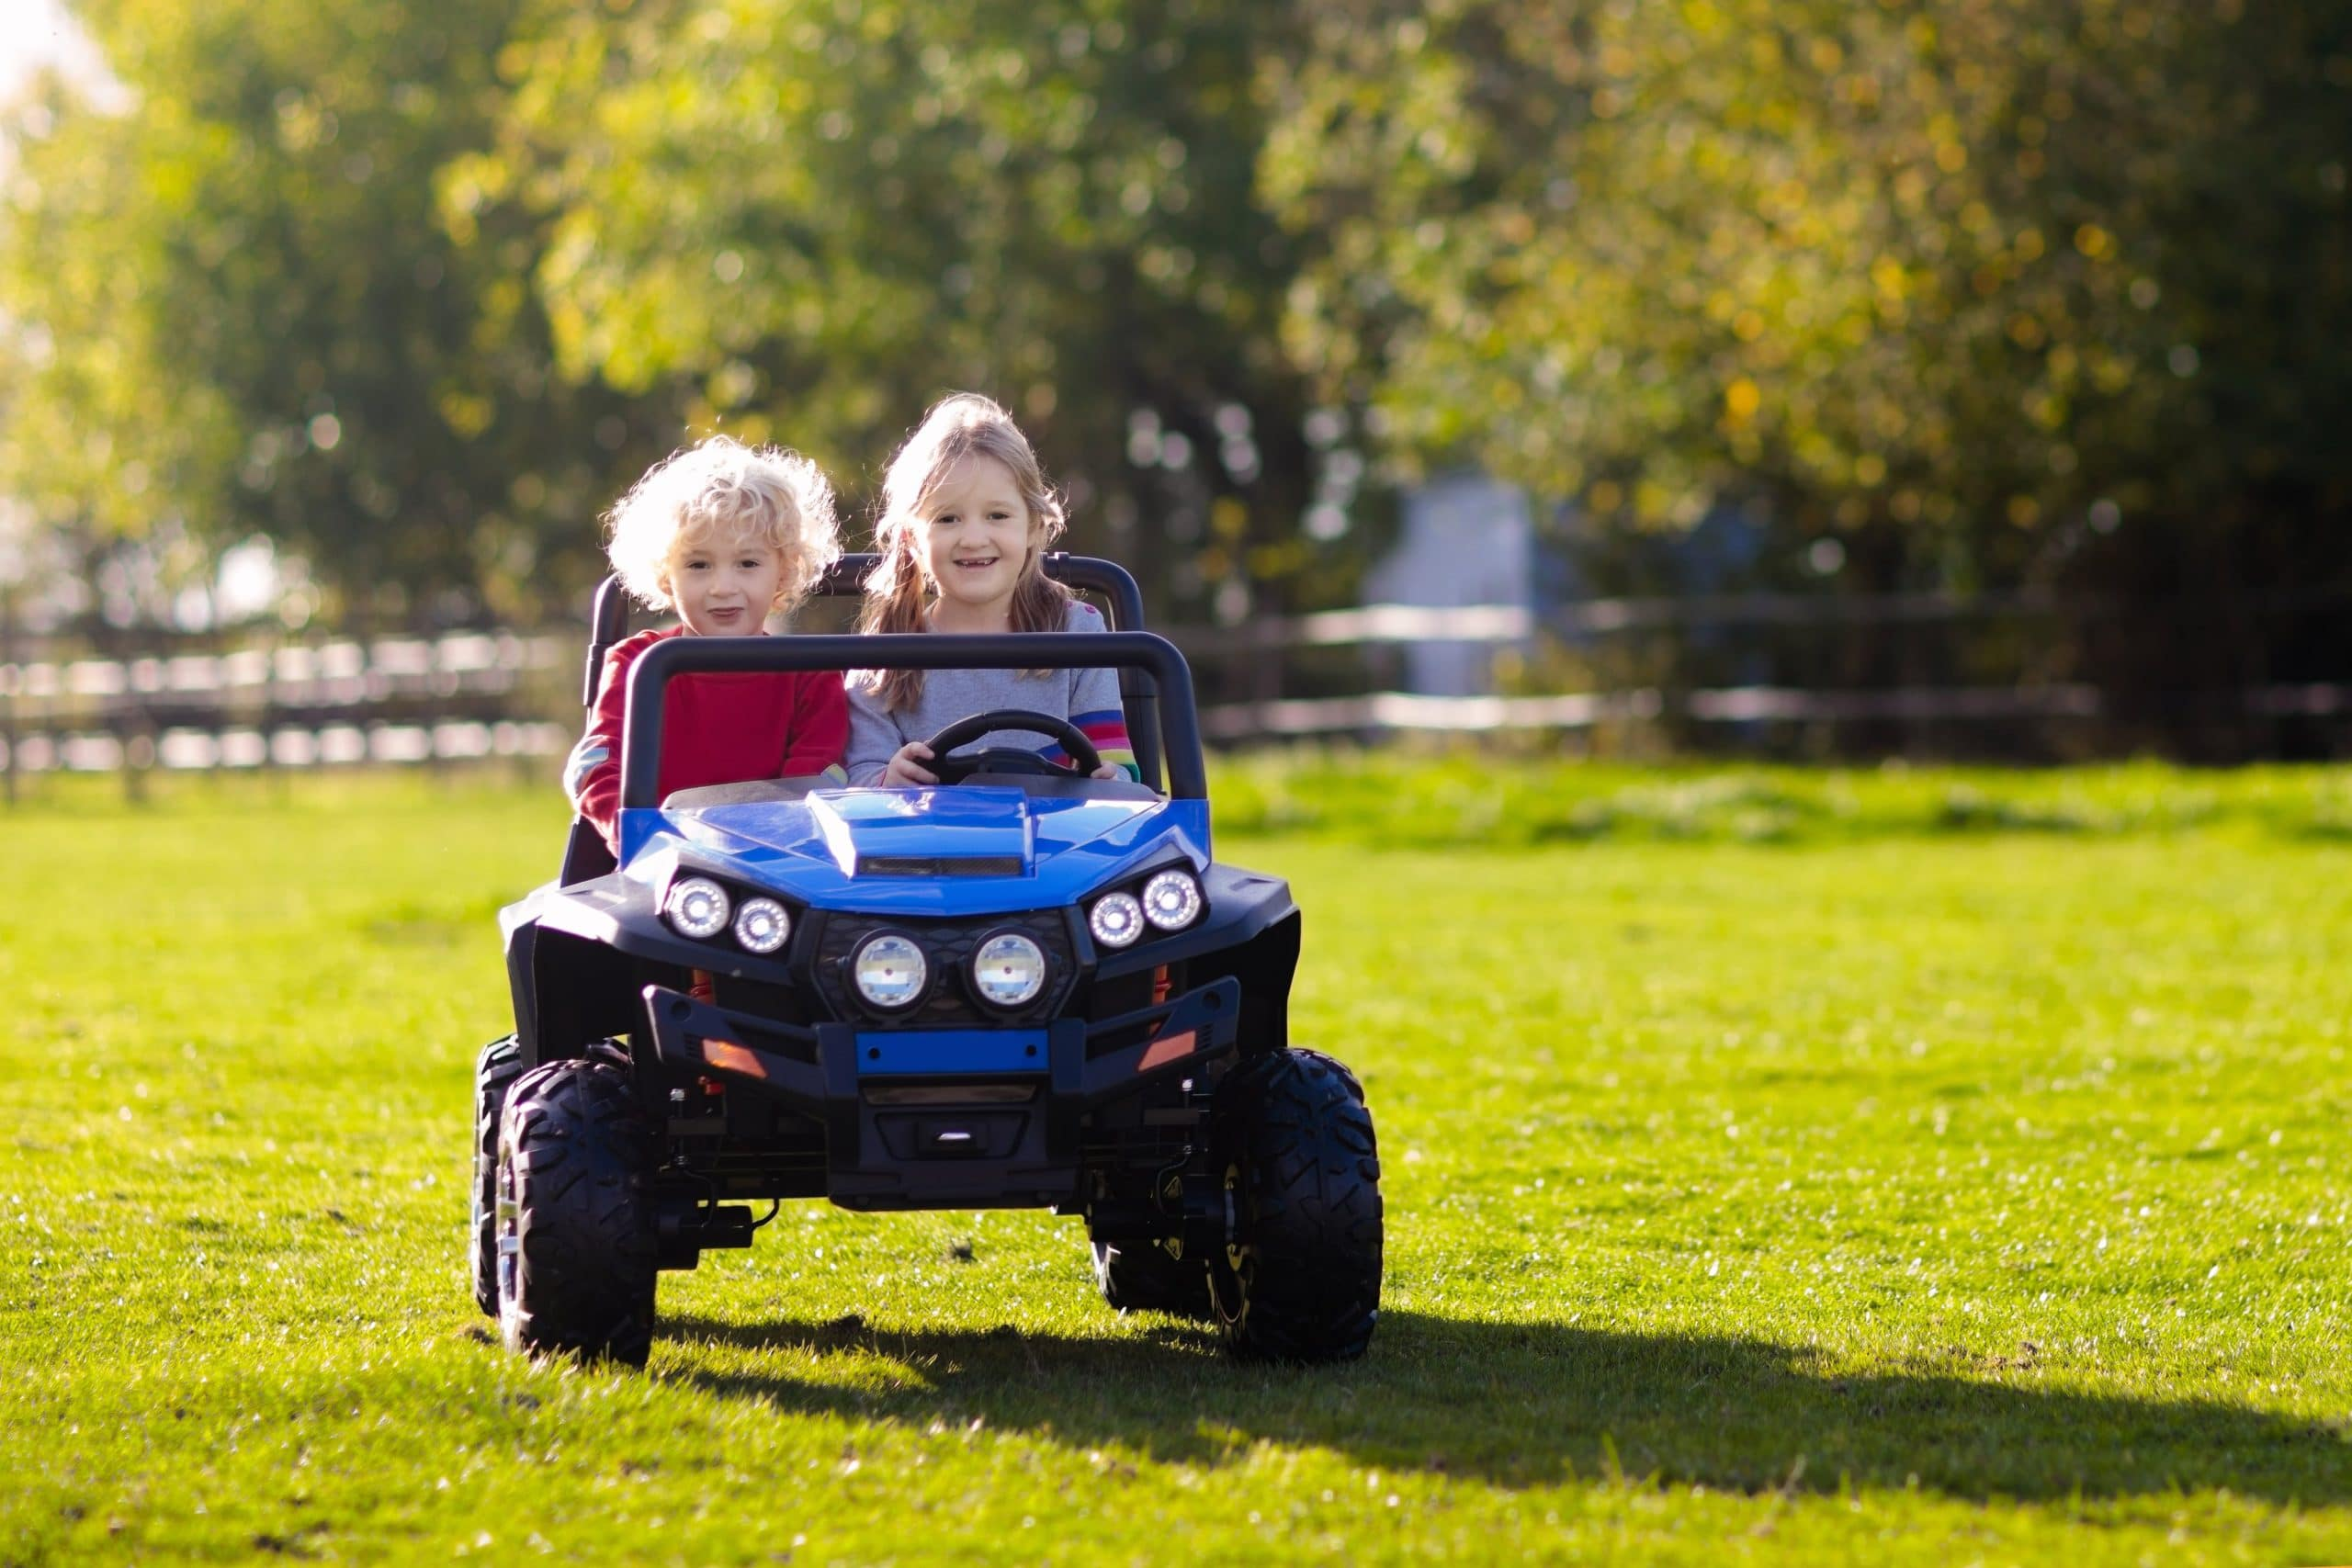 Top 5: Best 2-Seater Electric Ride-On Cars for Kids - ChildrensToyBox